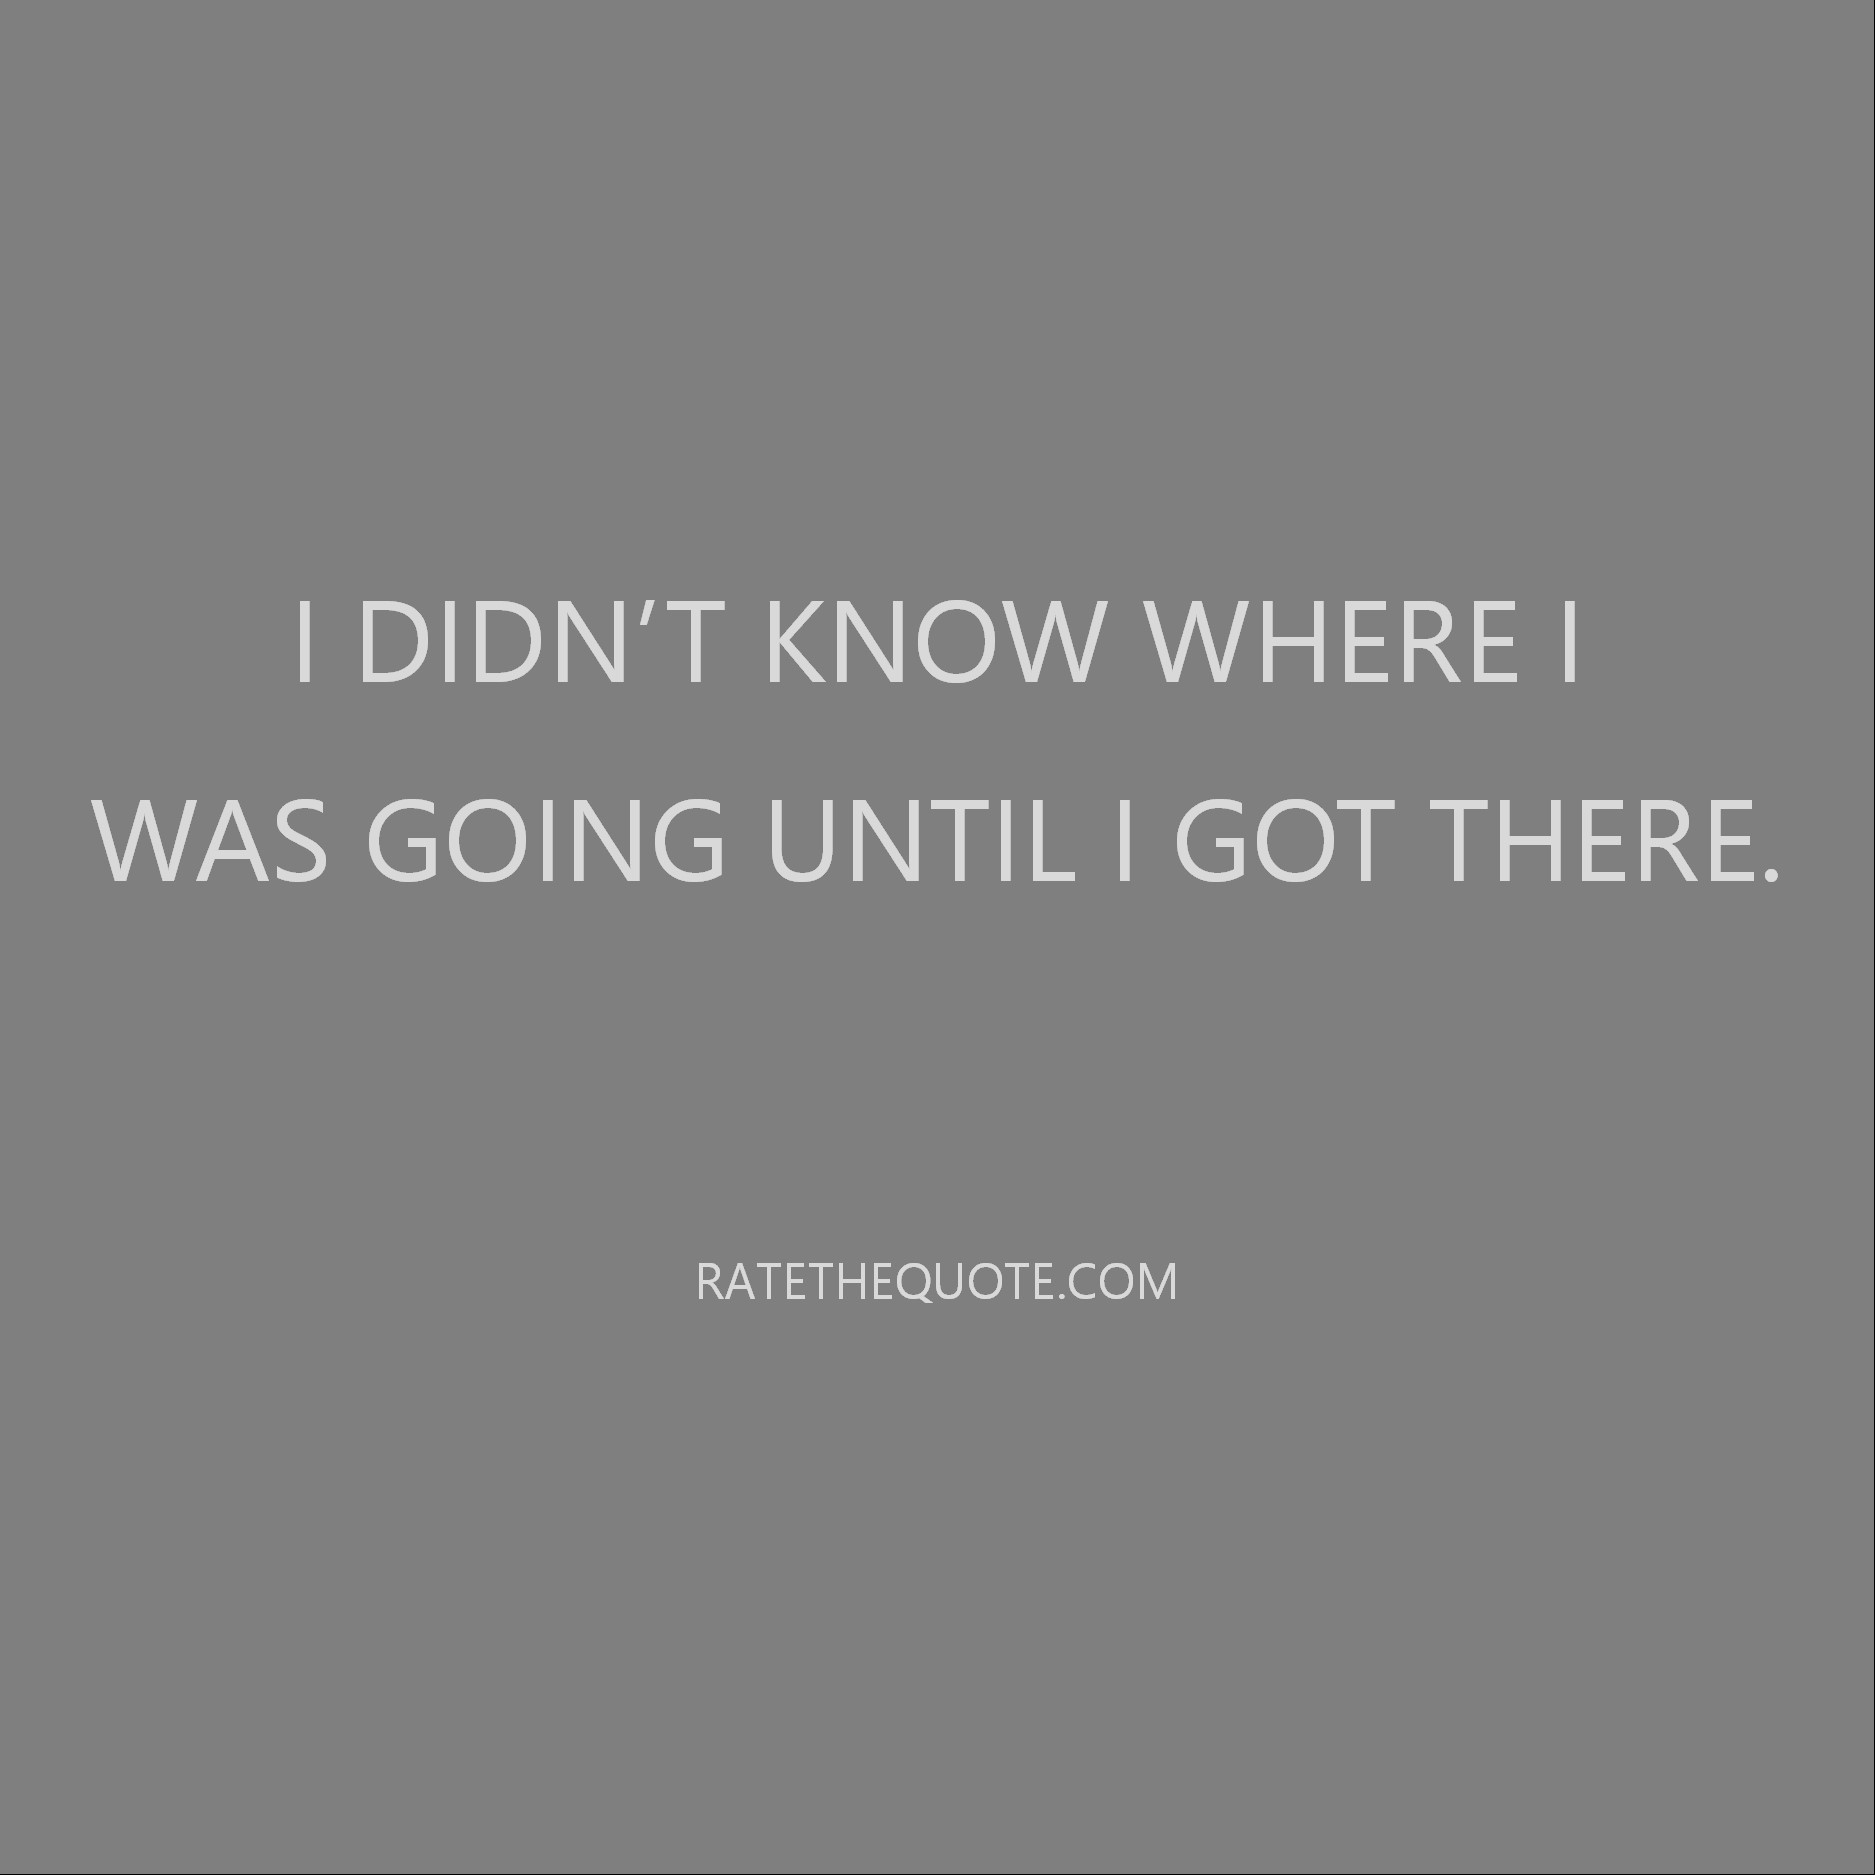 I didn't know where I was going until I got there.